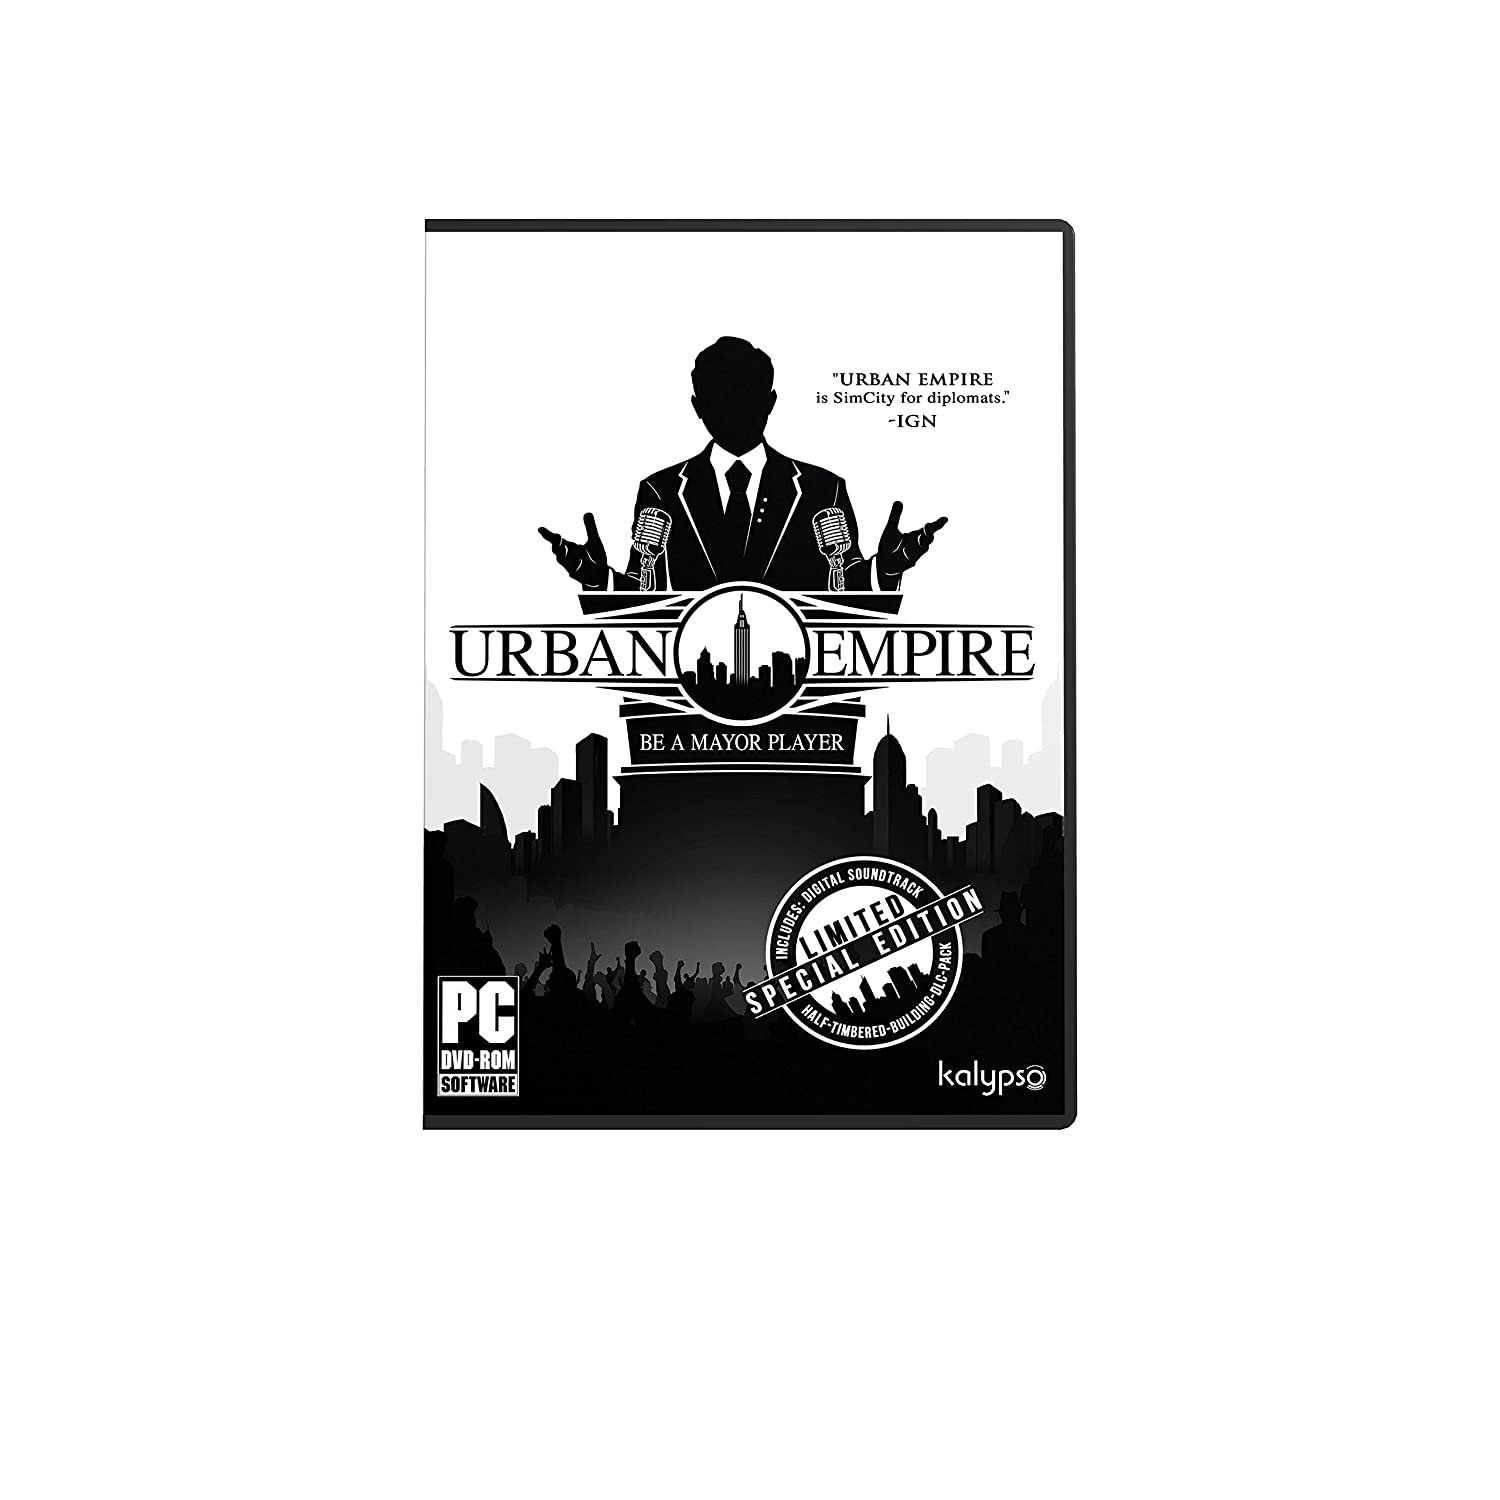 Urban Empire Special Limited Clearance SALE! Limited time! Edition for Player Major Be a PC; Indefinitely